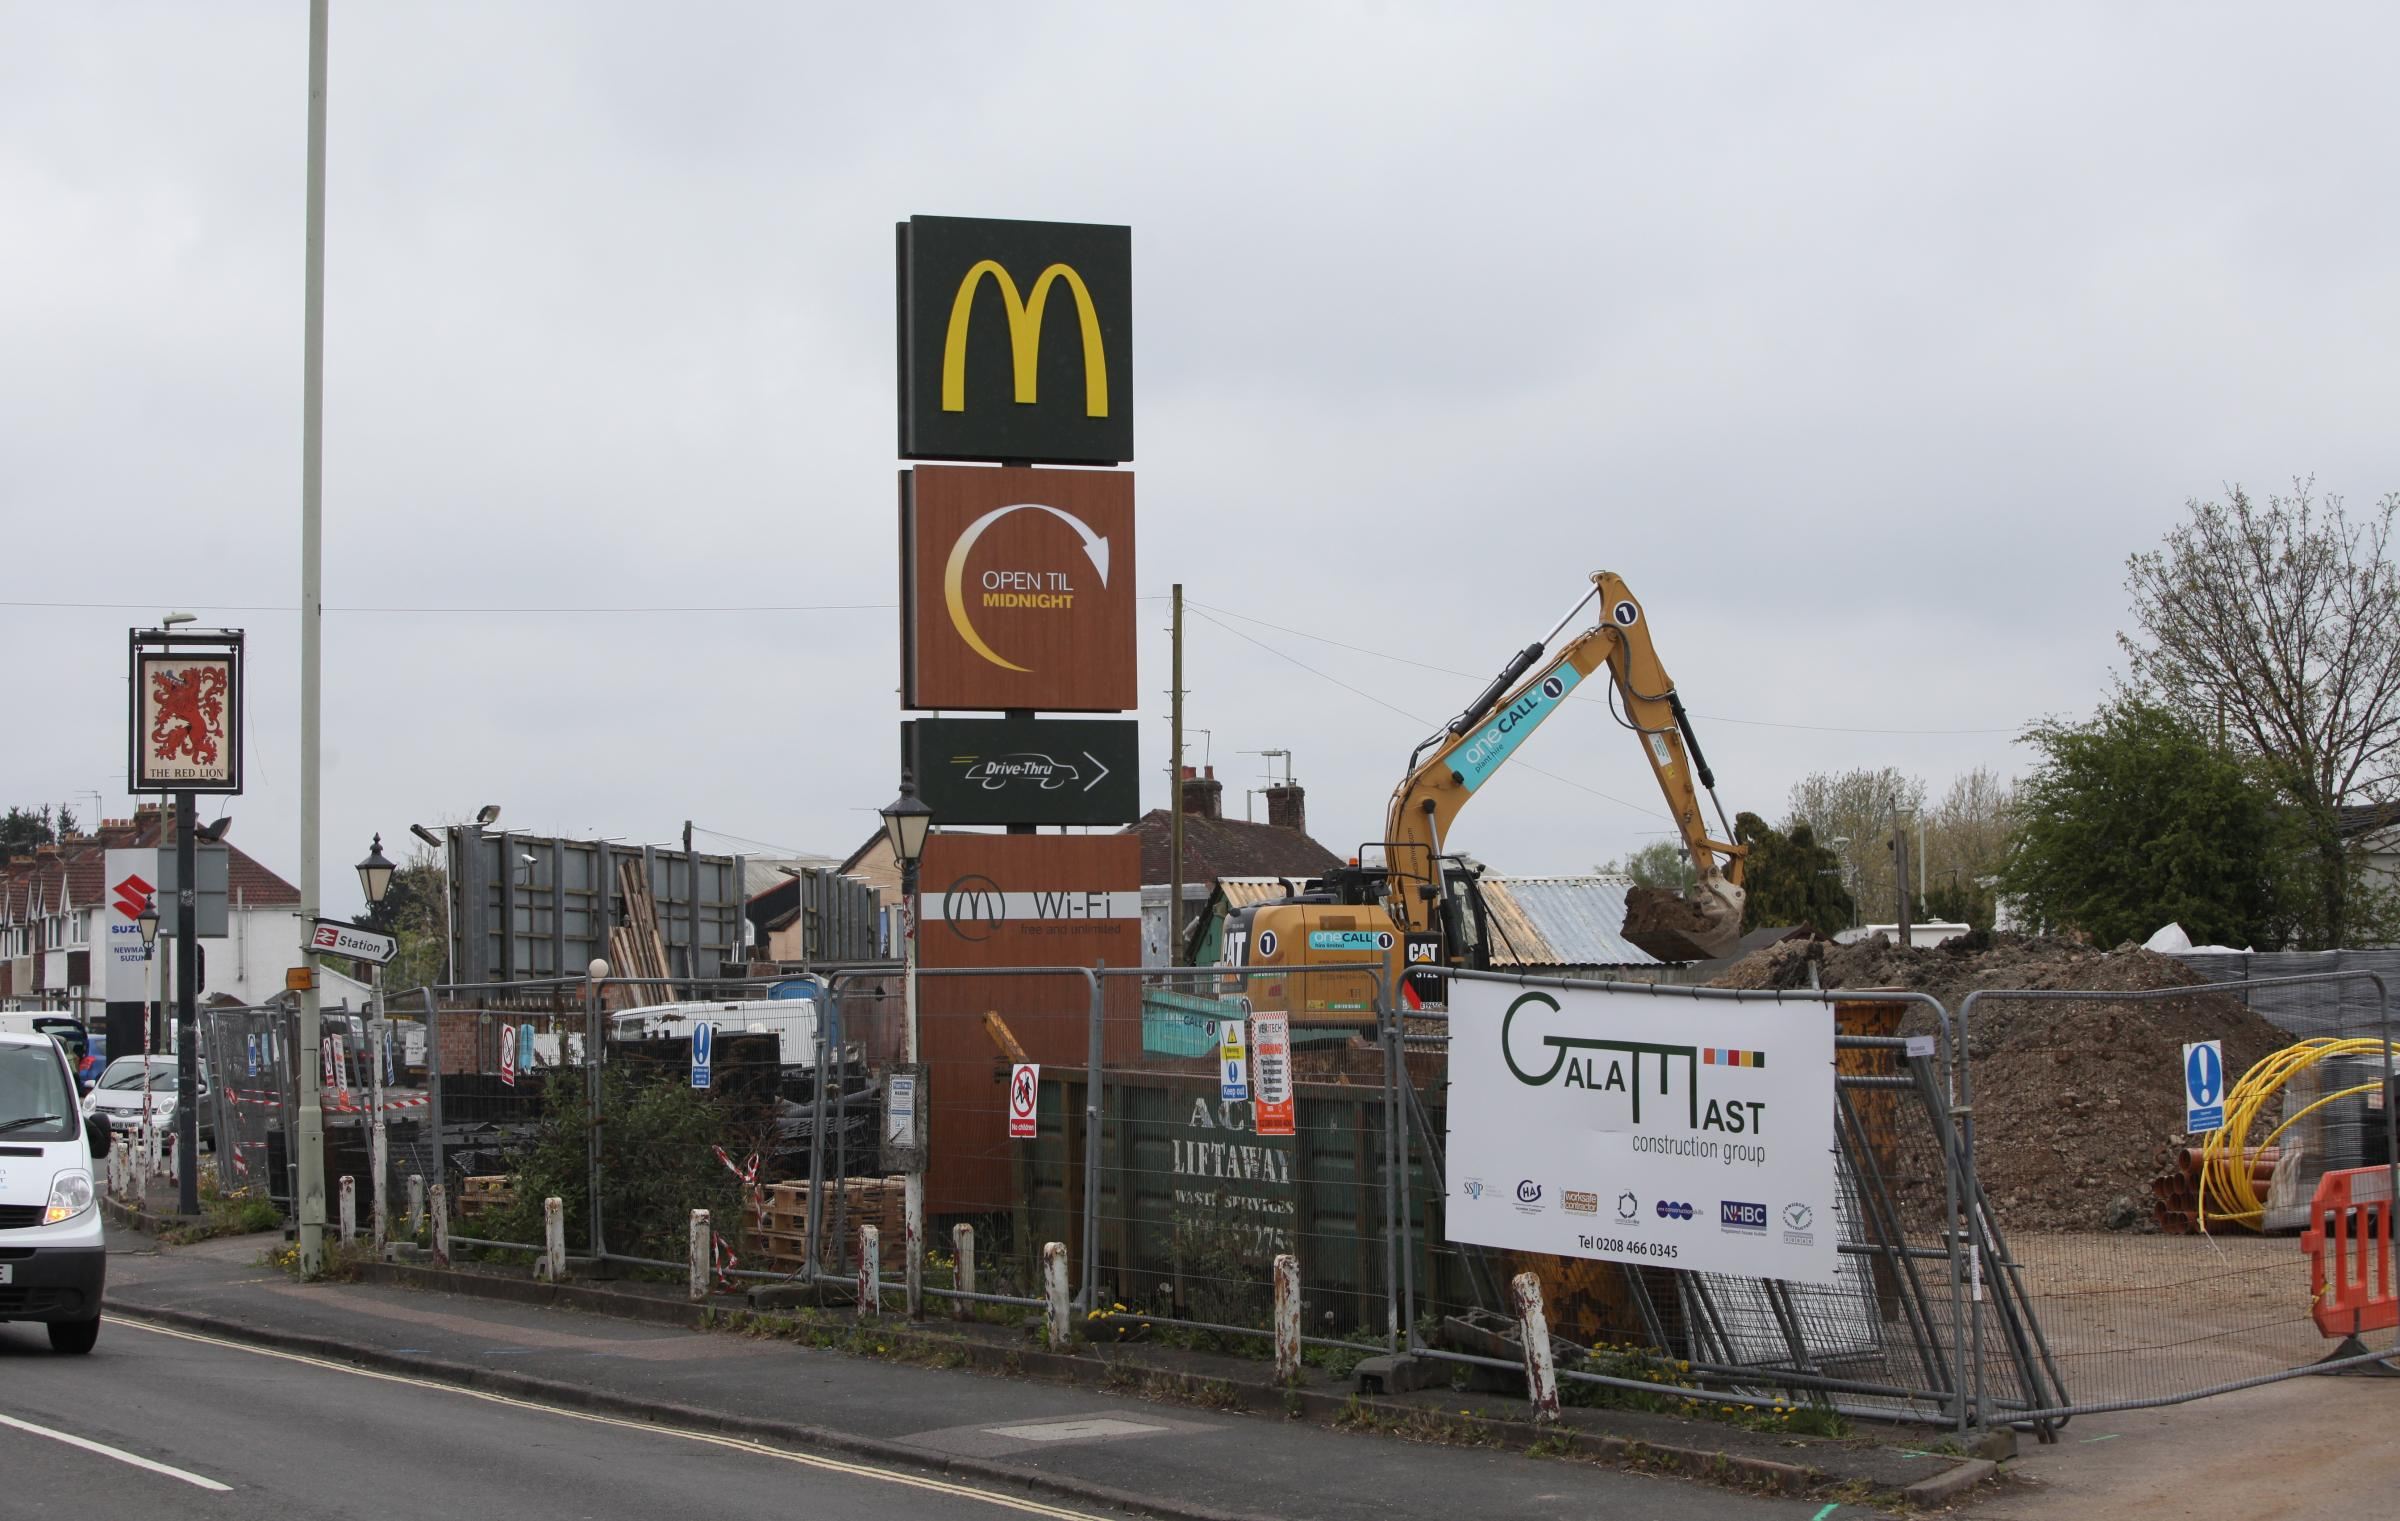 Work at the McDonald's restaurant in Totton